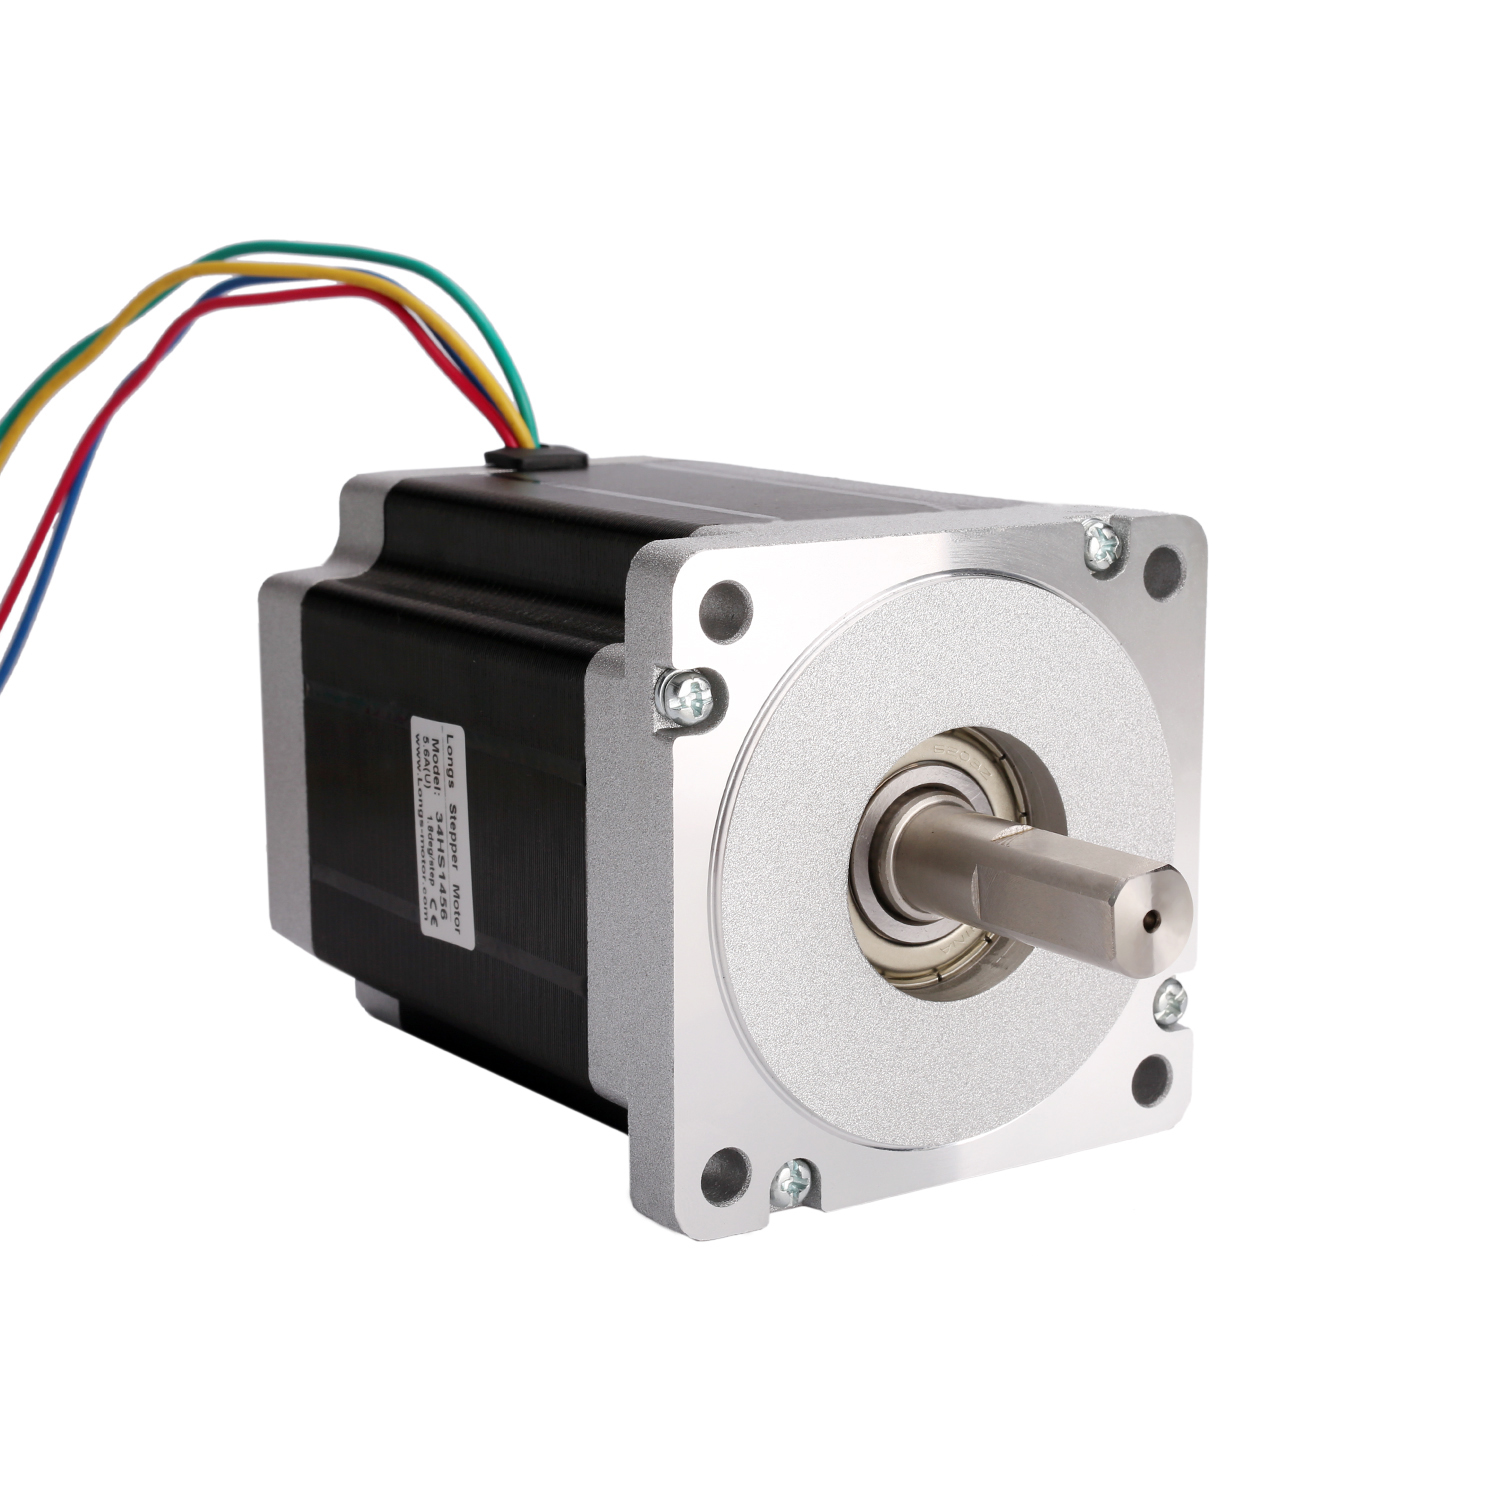 HYBRID Stepper Motors, Nema34 Image ແນະນໍາ